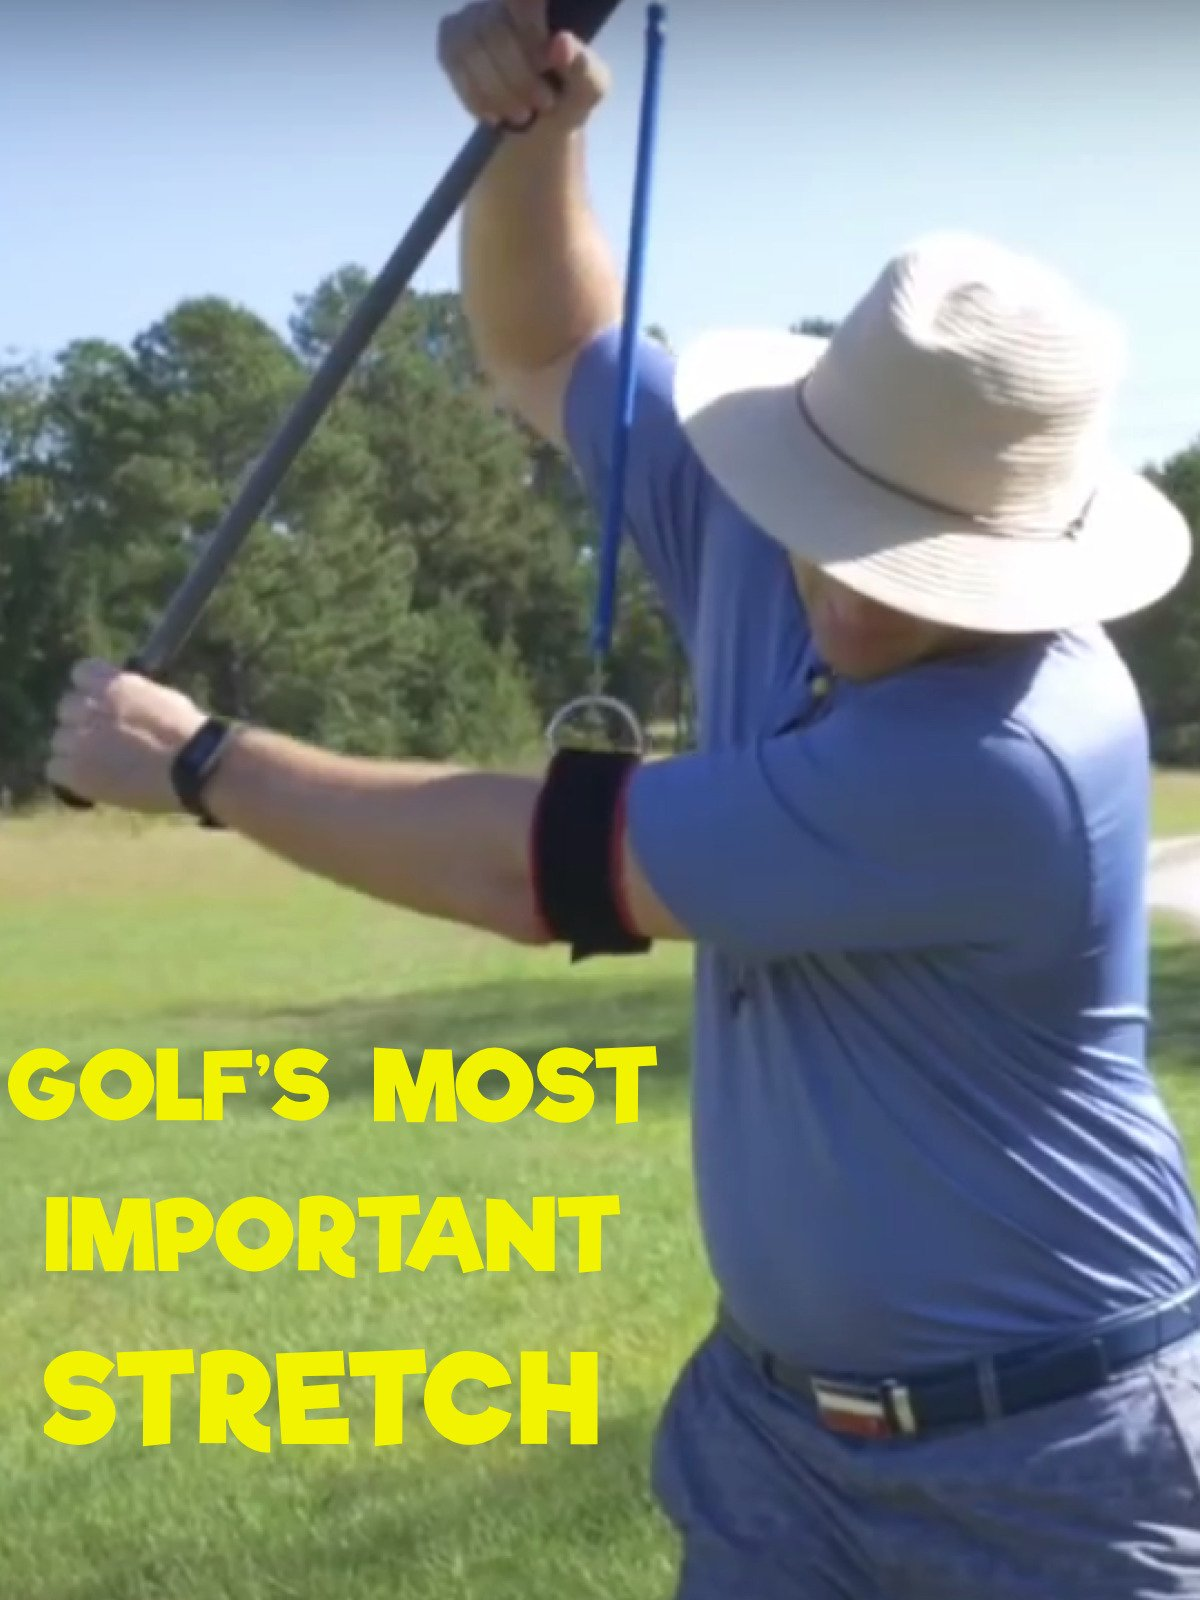 Golf's Most Important Stretch